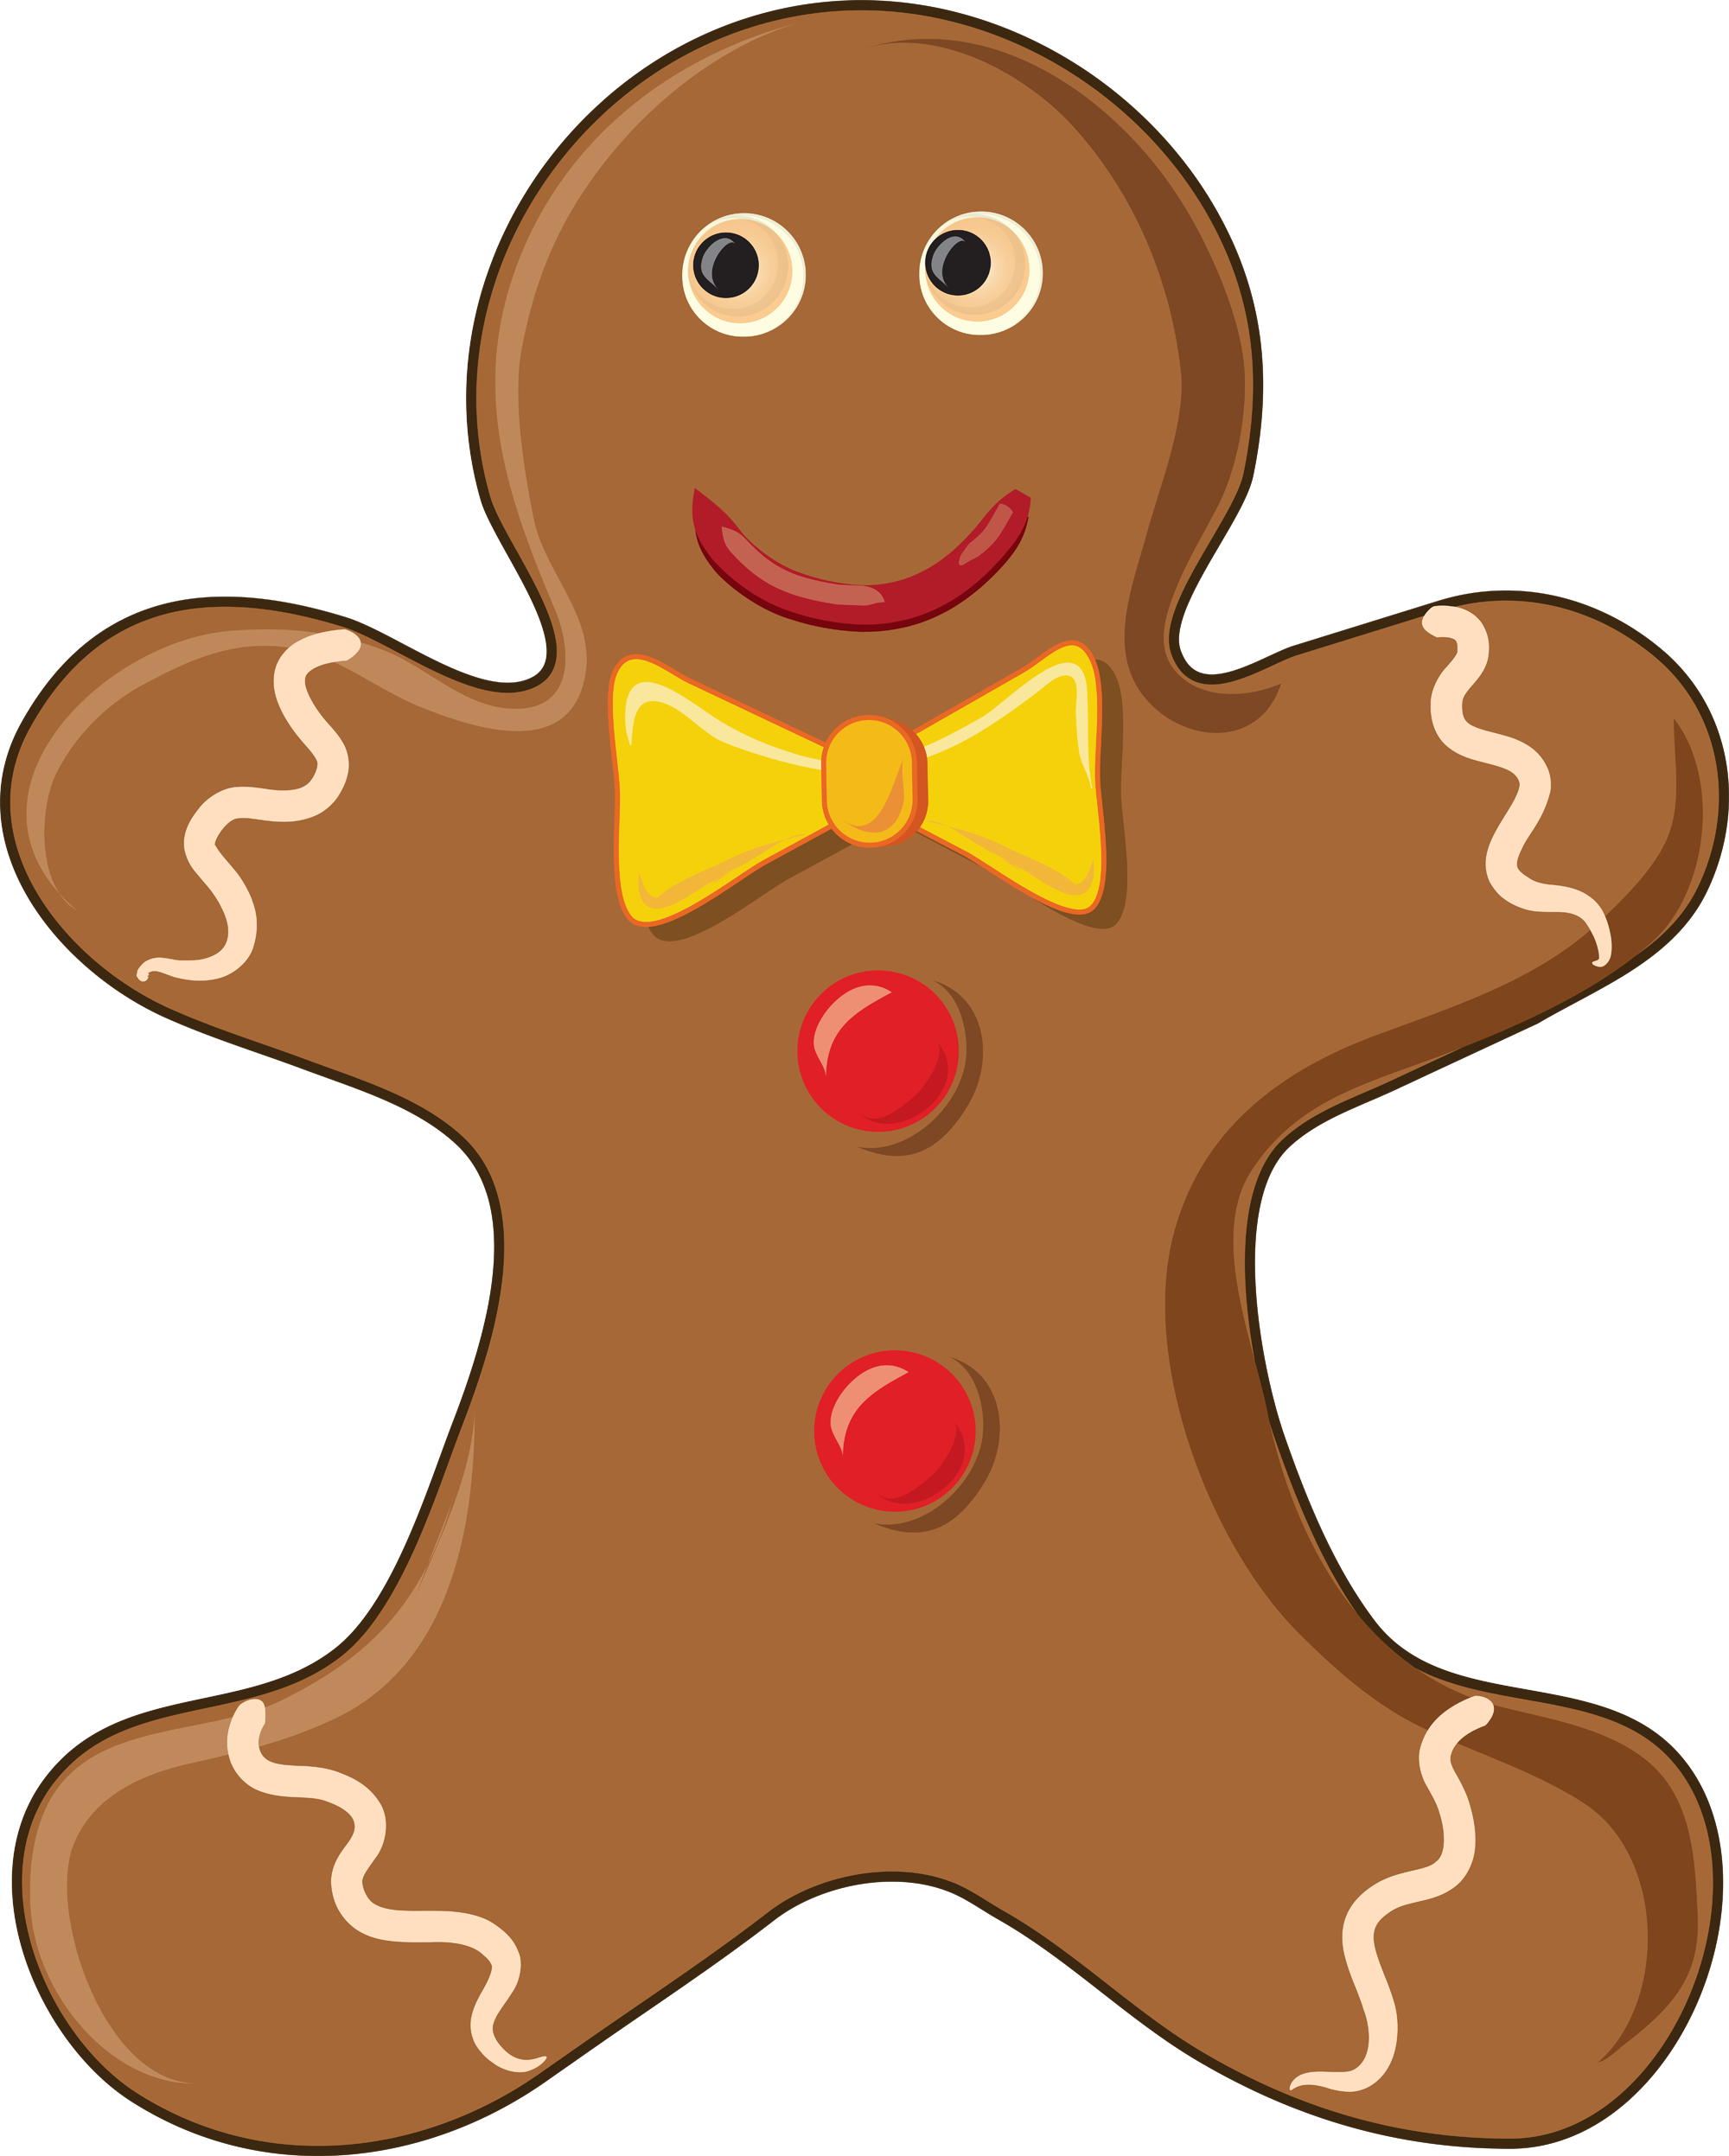 2000x2494 Gingerbread Man Gingerbread Man Clip Art Gingerbread